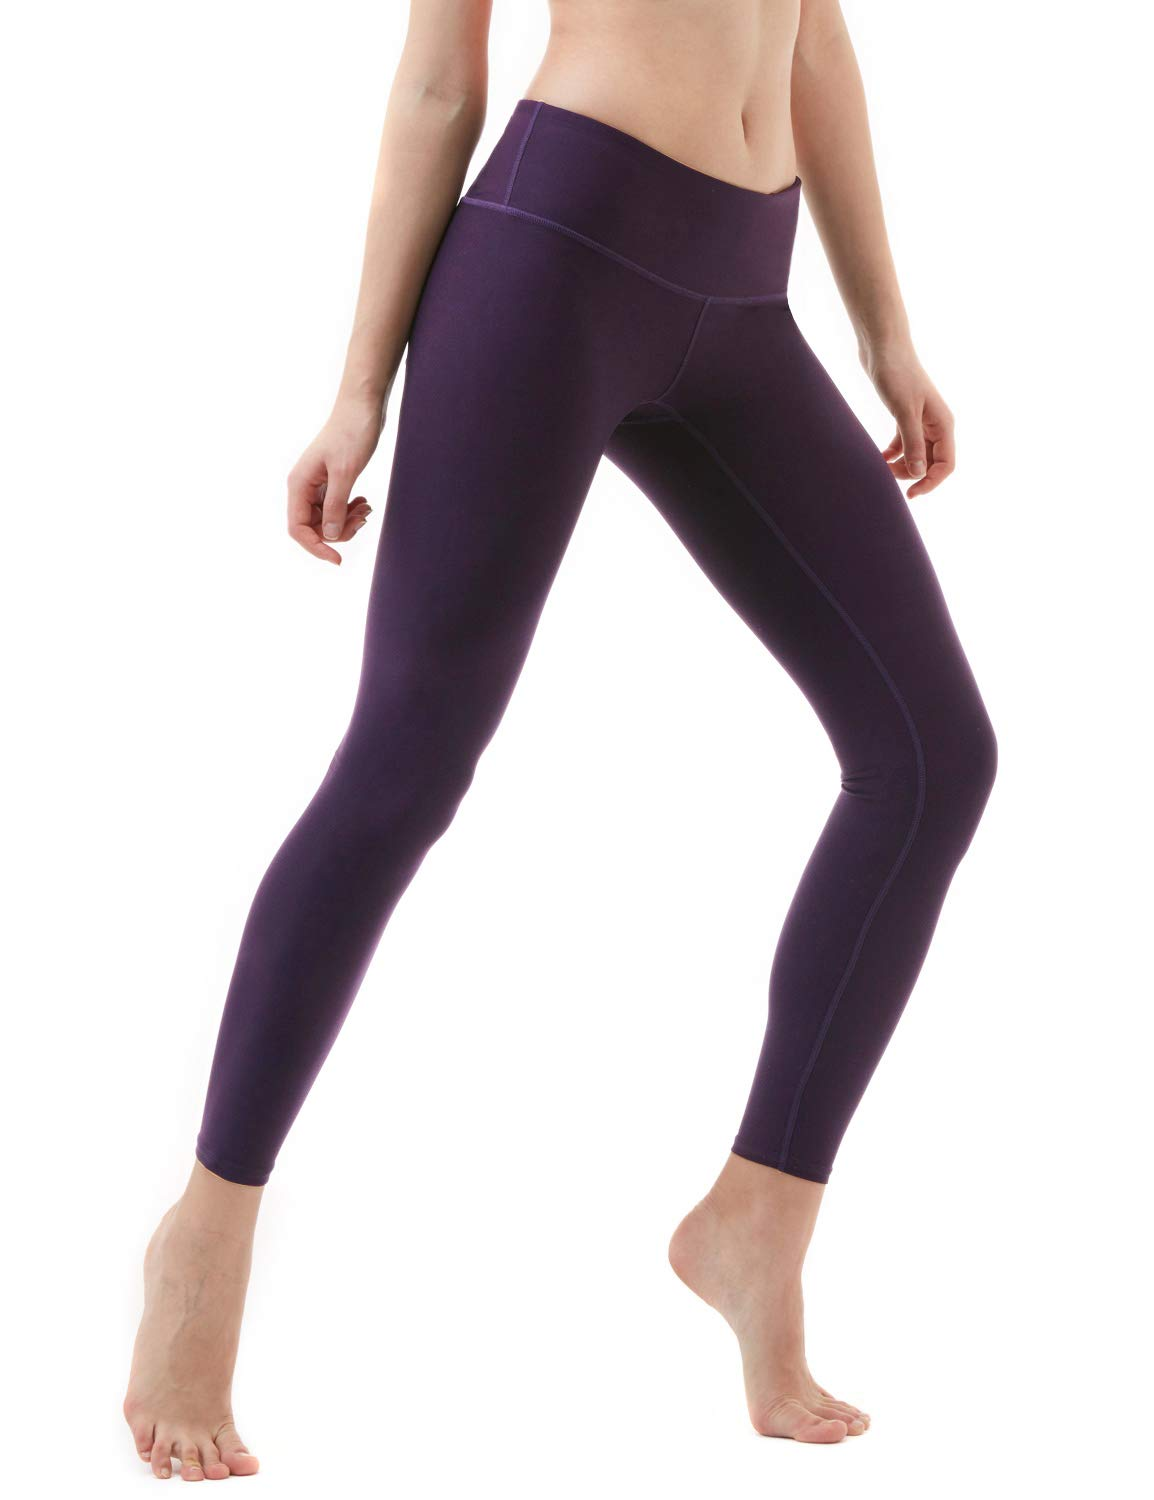 6ed9989b58d11 TSLA Yoga Pants Mid-Waist Leggings w Hidden Pocket FYP51/FYP41 product image